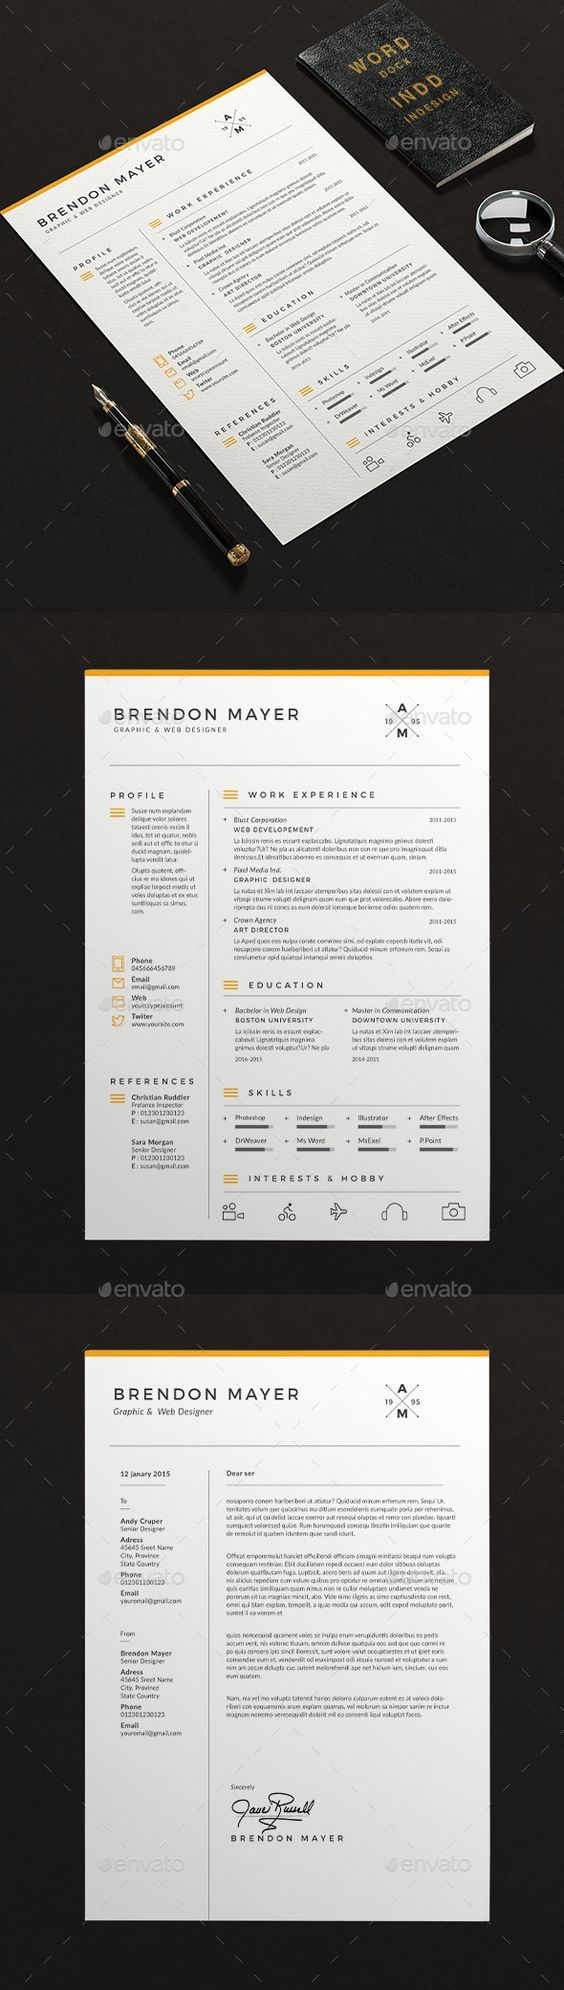 Professional & Modern Resume Template for MS Word | CV Template for word | Resume template for word  - 100% Editable.  - Instant Digital Download. - US Letter & A4 size format included. - Mac & PC Compatible using Ms Word. - Resume writing guide